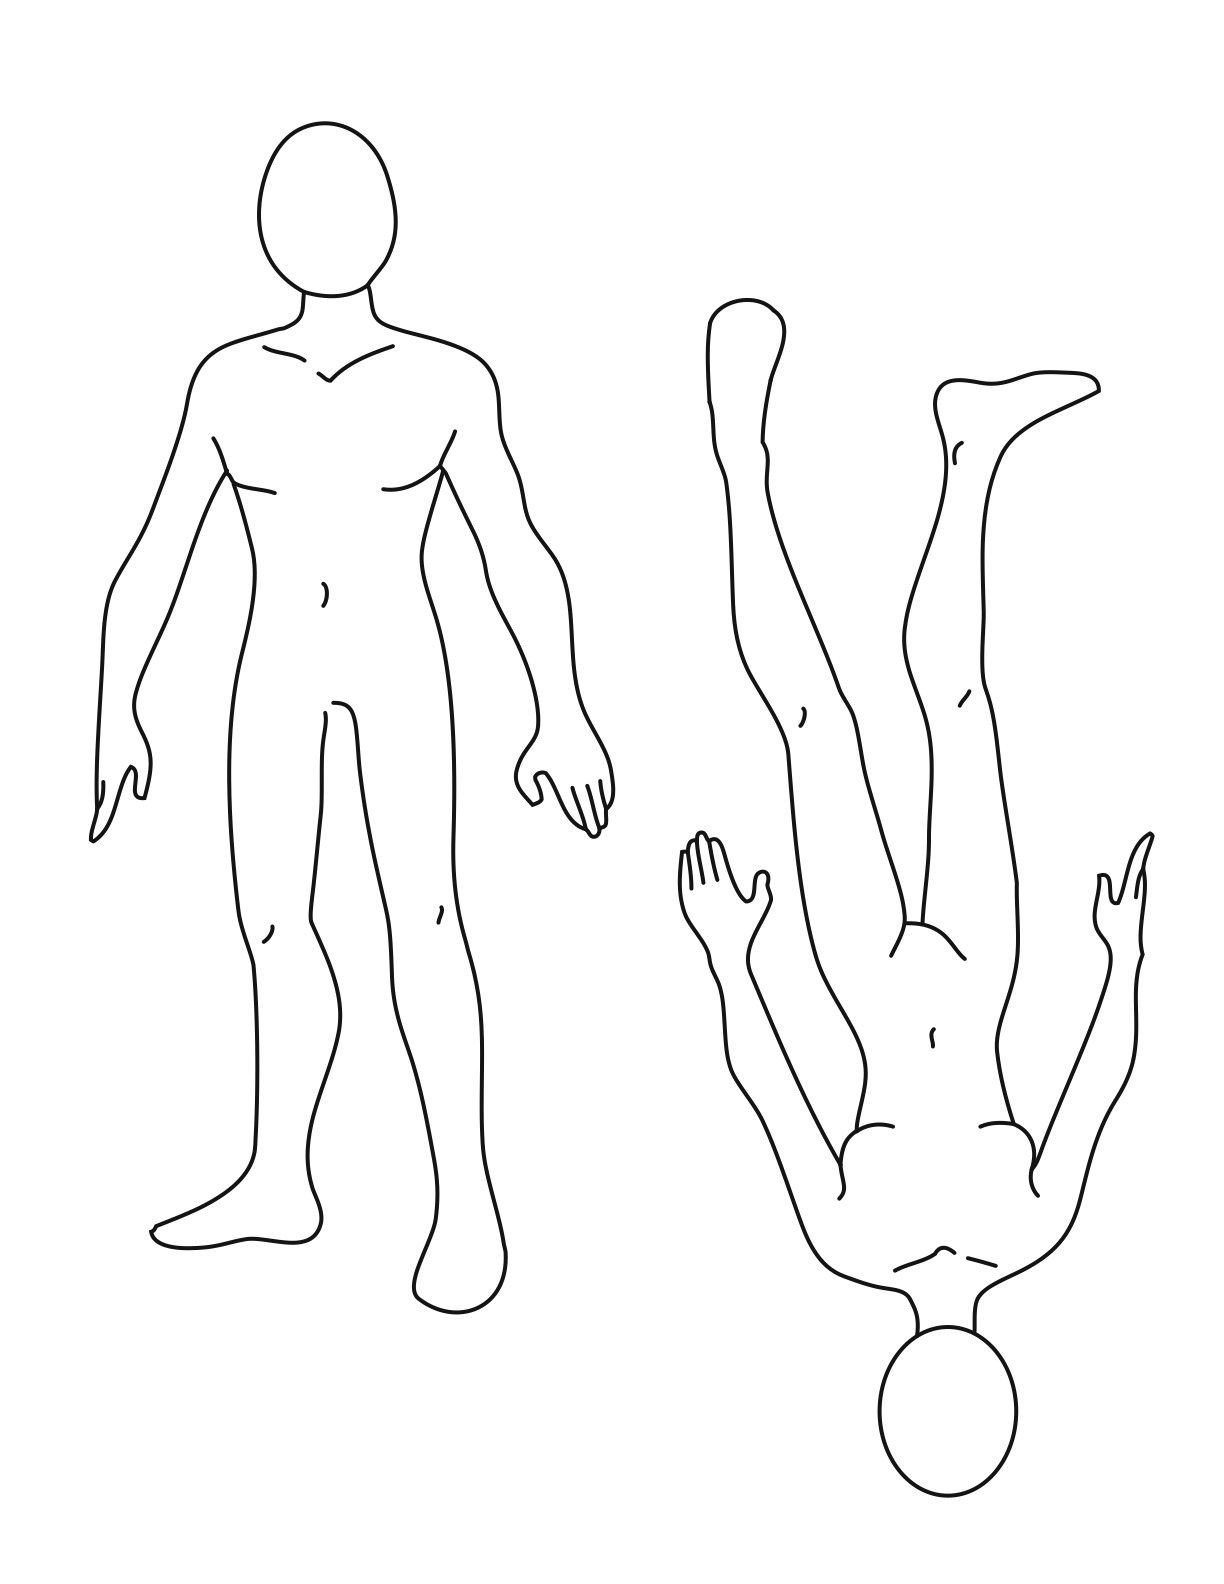 Female Body Outline Template Pix for Cartoon Female Body Outline Shapes